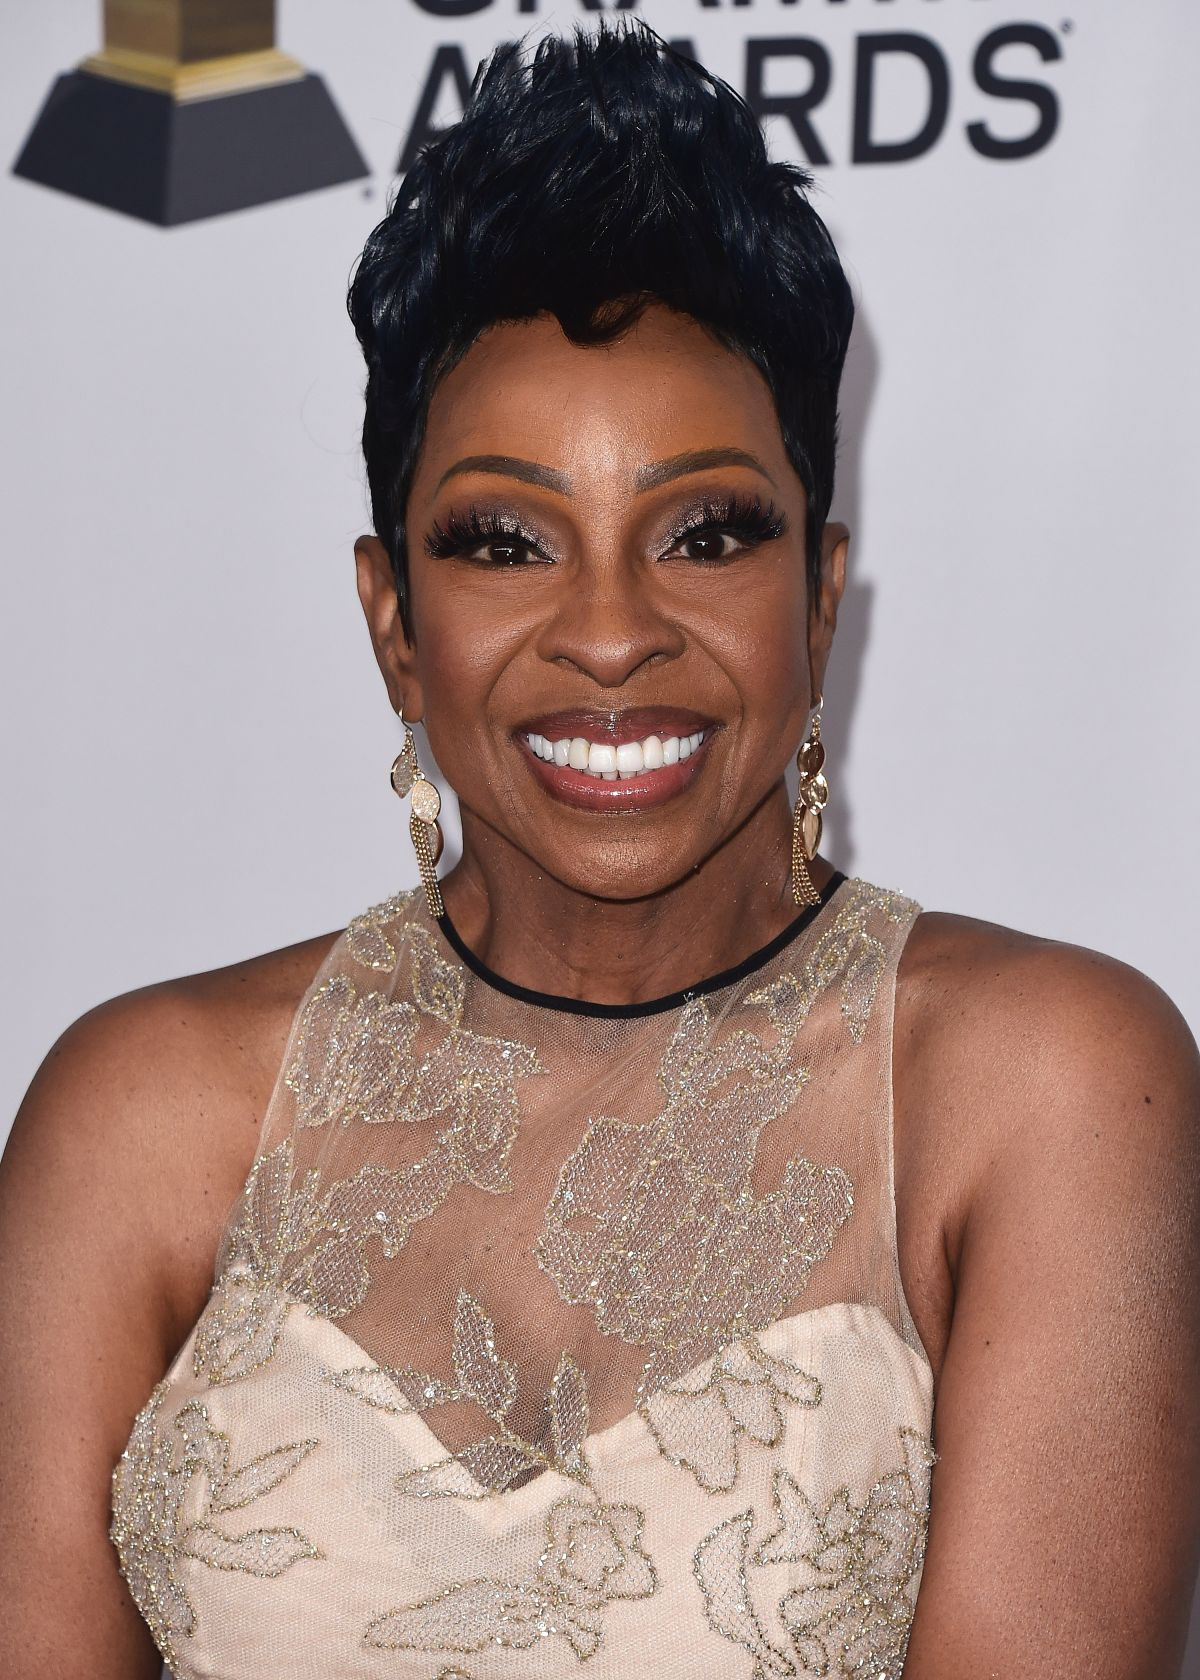 gladys-knight-at-clive-davis-and-recording-academy-pre-grammy-gala-in-new-york-01-27-2018-1.jpg&f=1&nofb=1